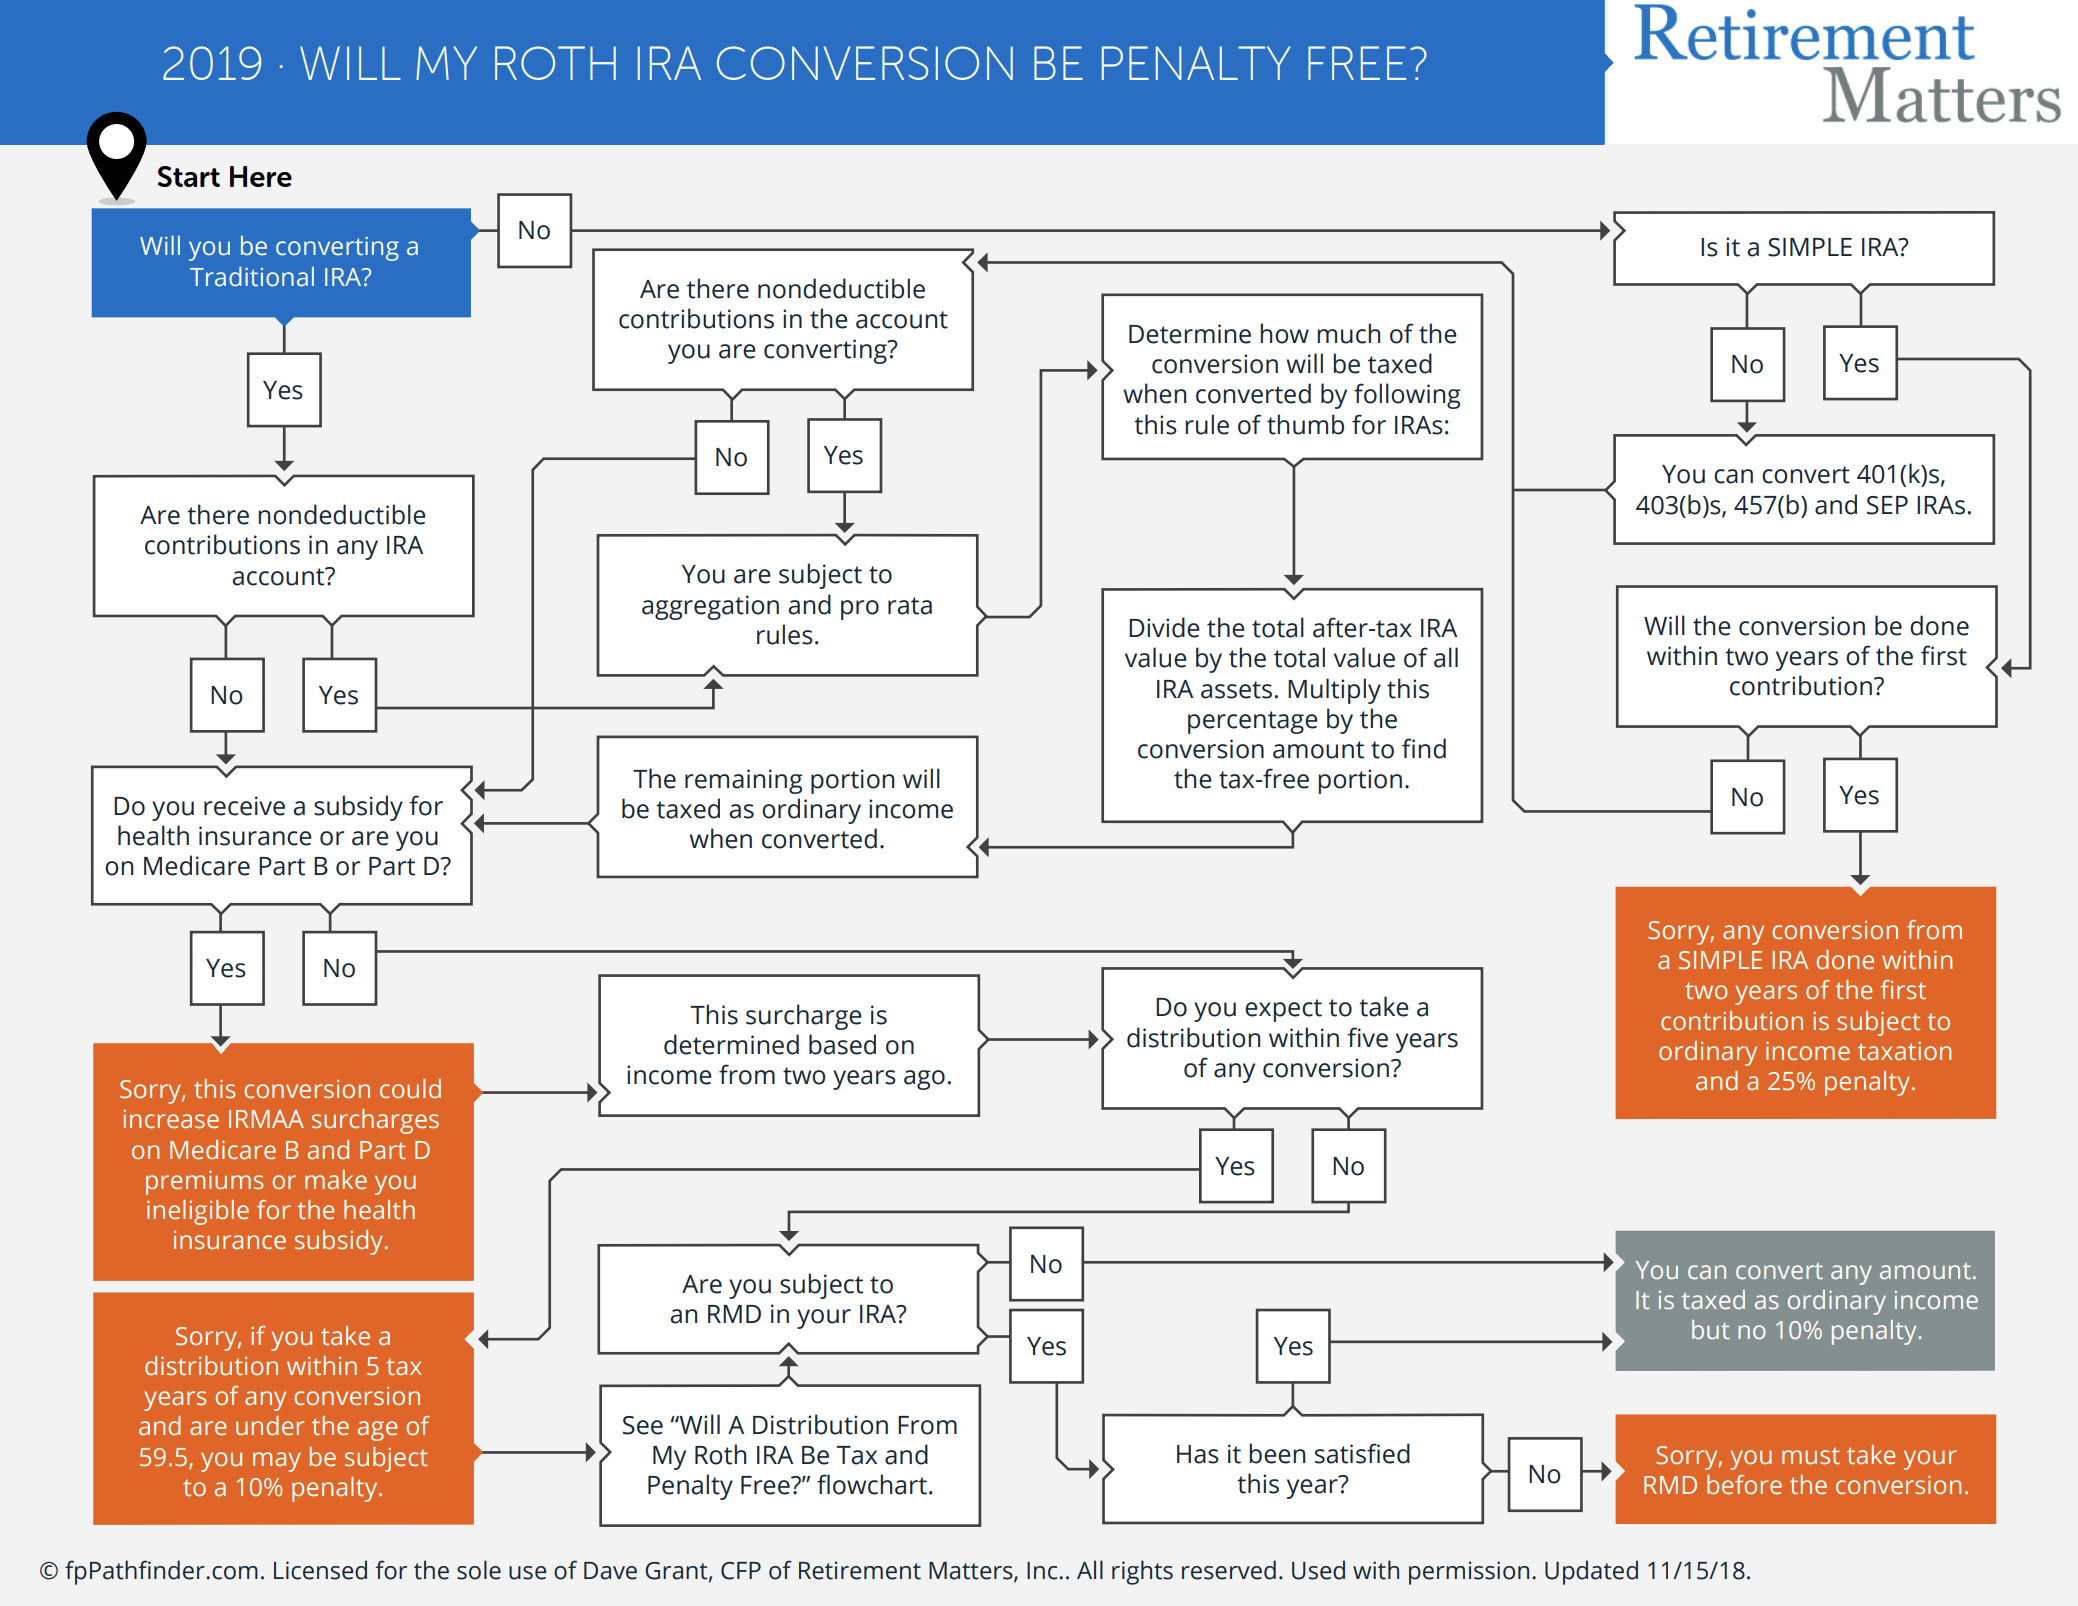 Will My Roth IRA Conversion Be Penalty Free? Thumbnail